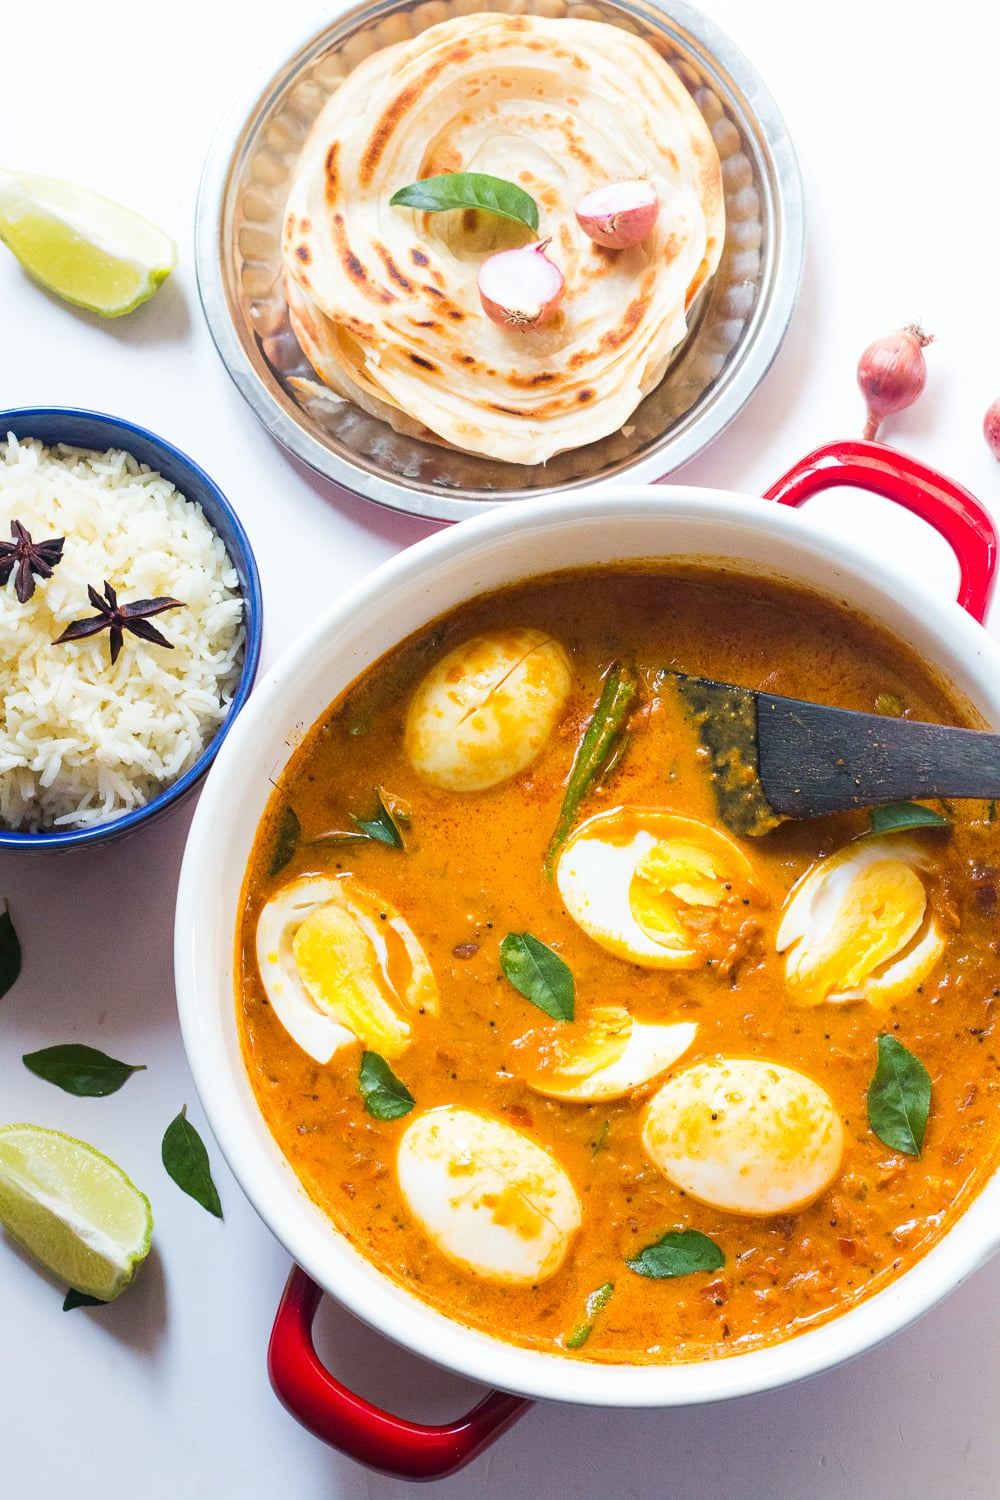 south-indian-style-egg-curry-recipe.1024x1024.jpg